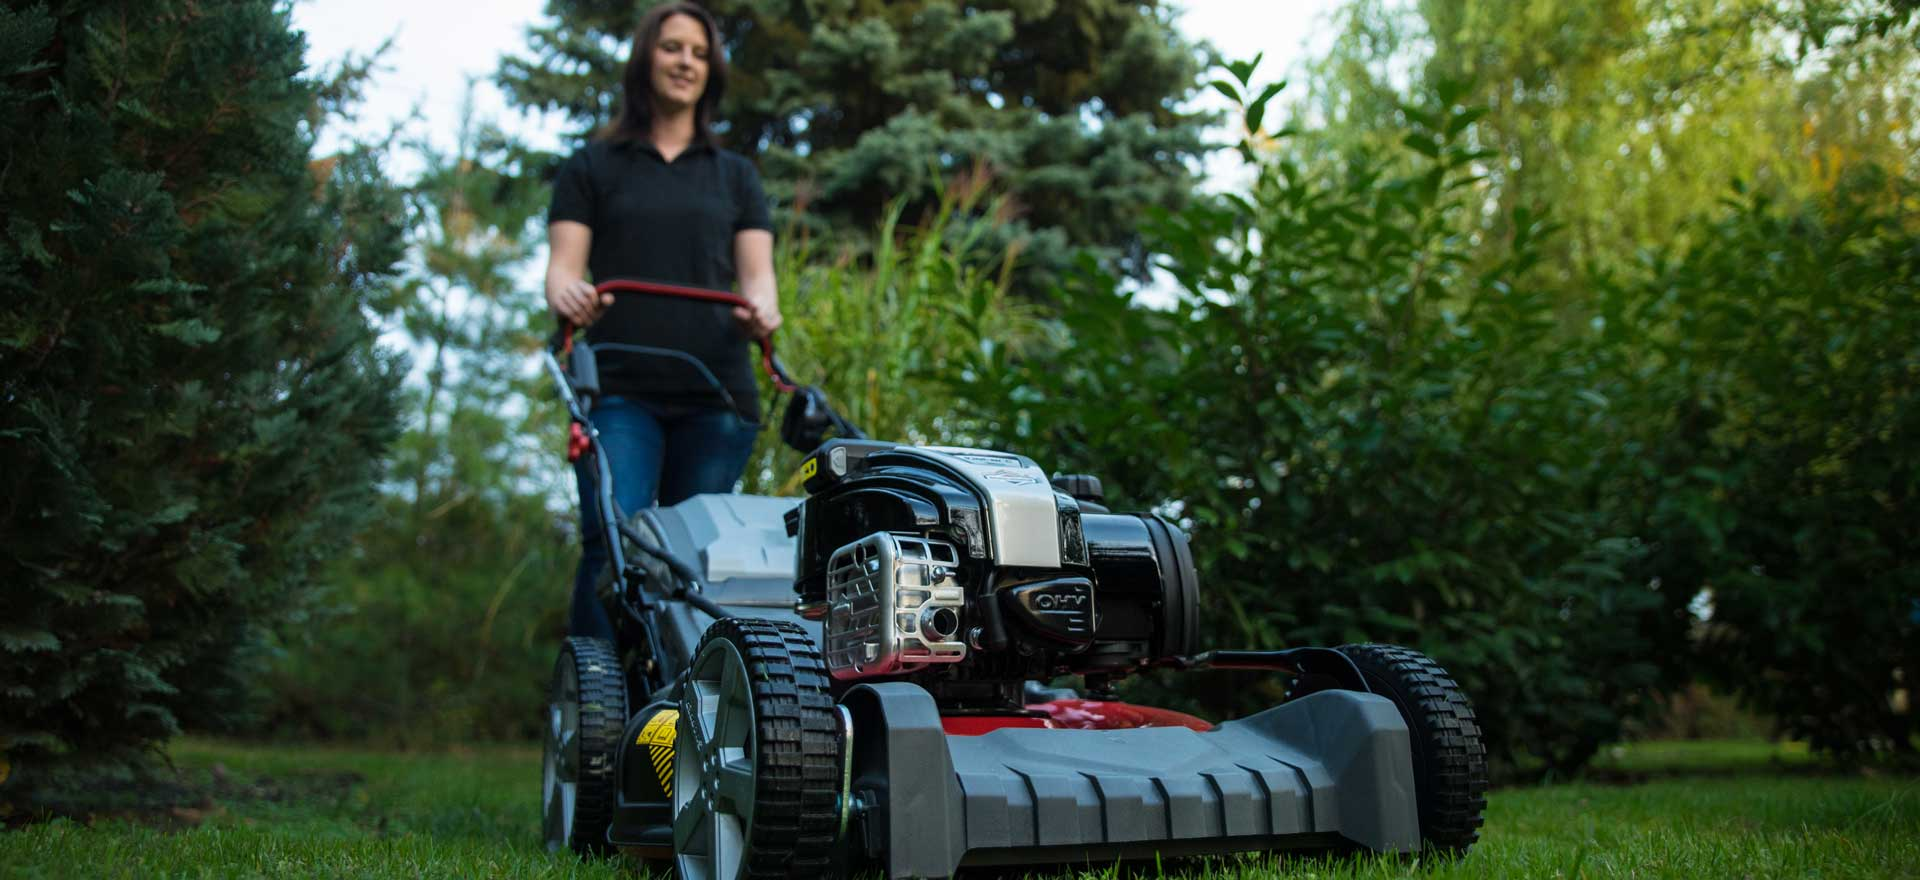 The best self-propelled lawn mower buying guide (2019): our top.